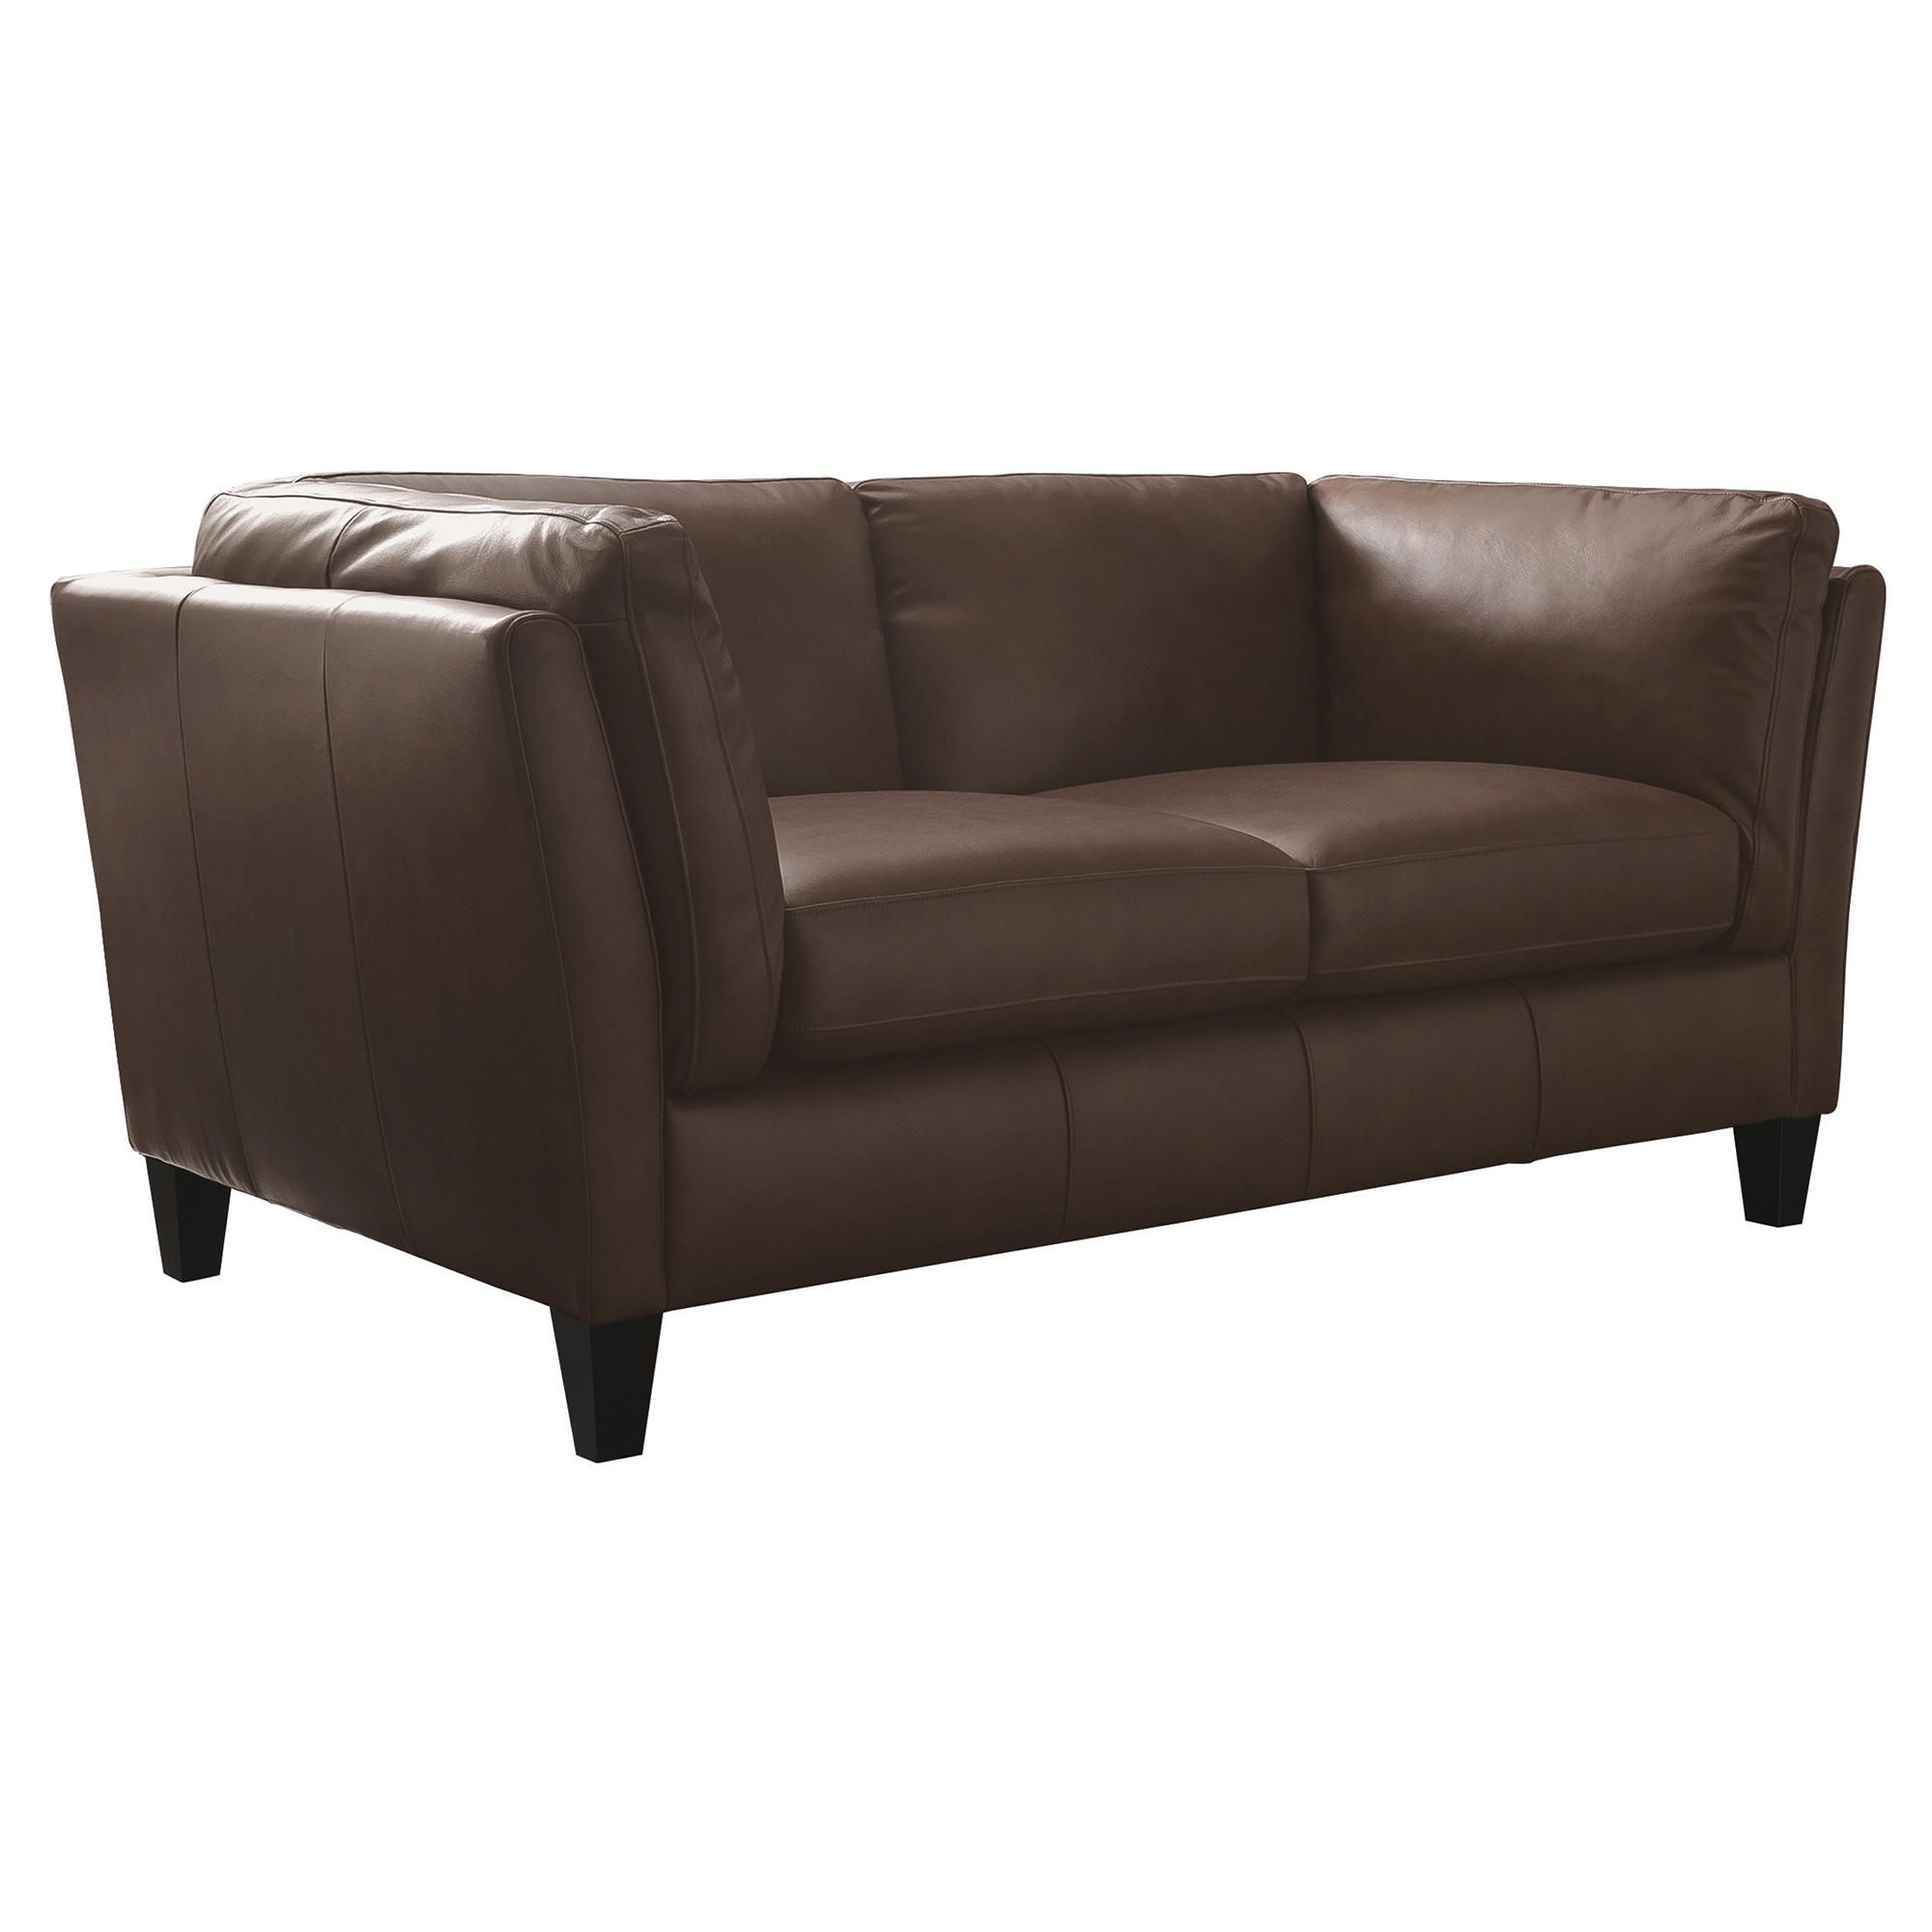 Santos Leather Small Sofa Cognac at Tesco Direct